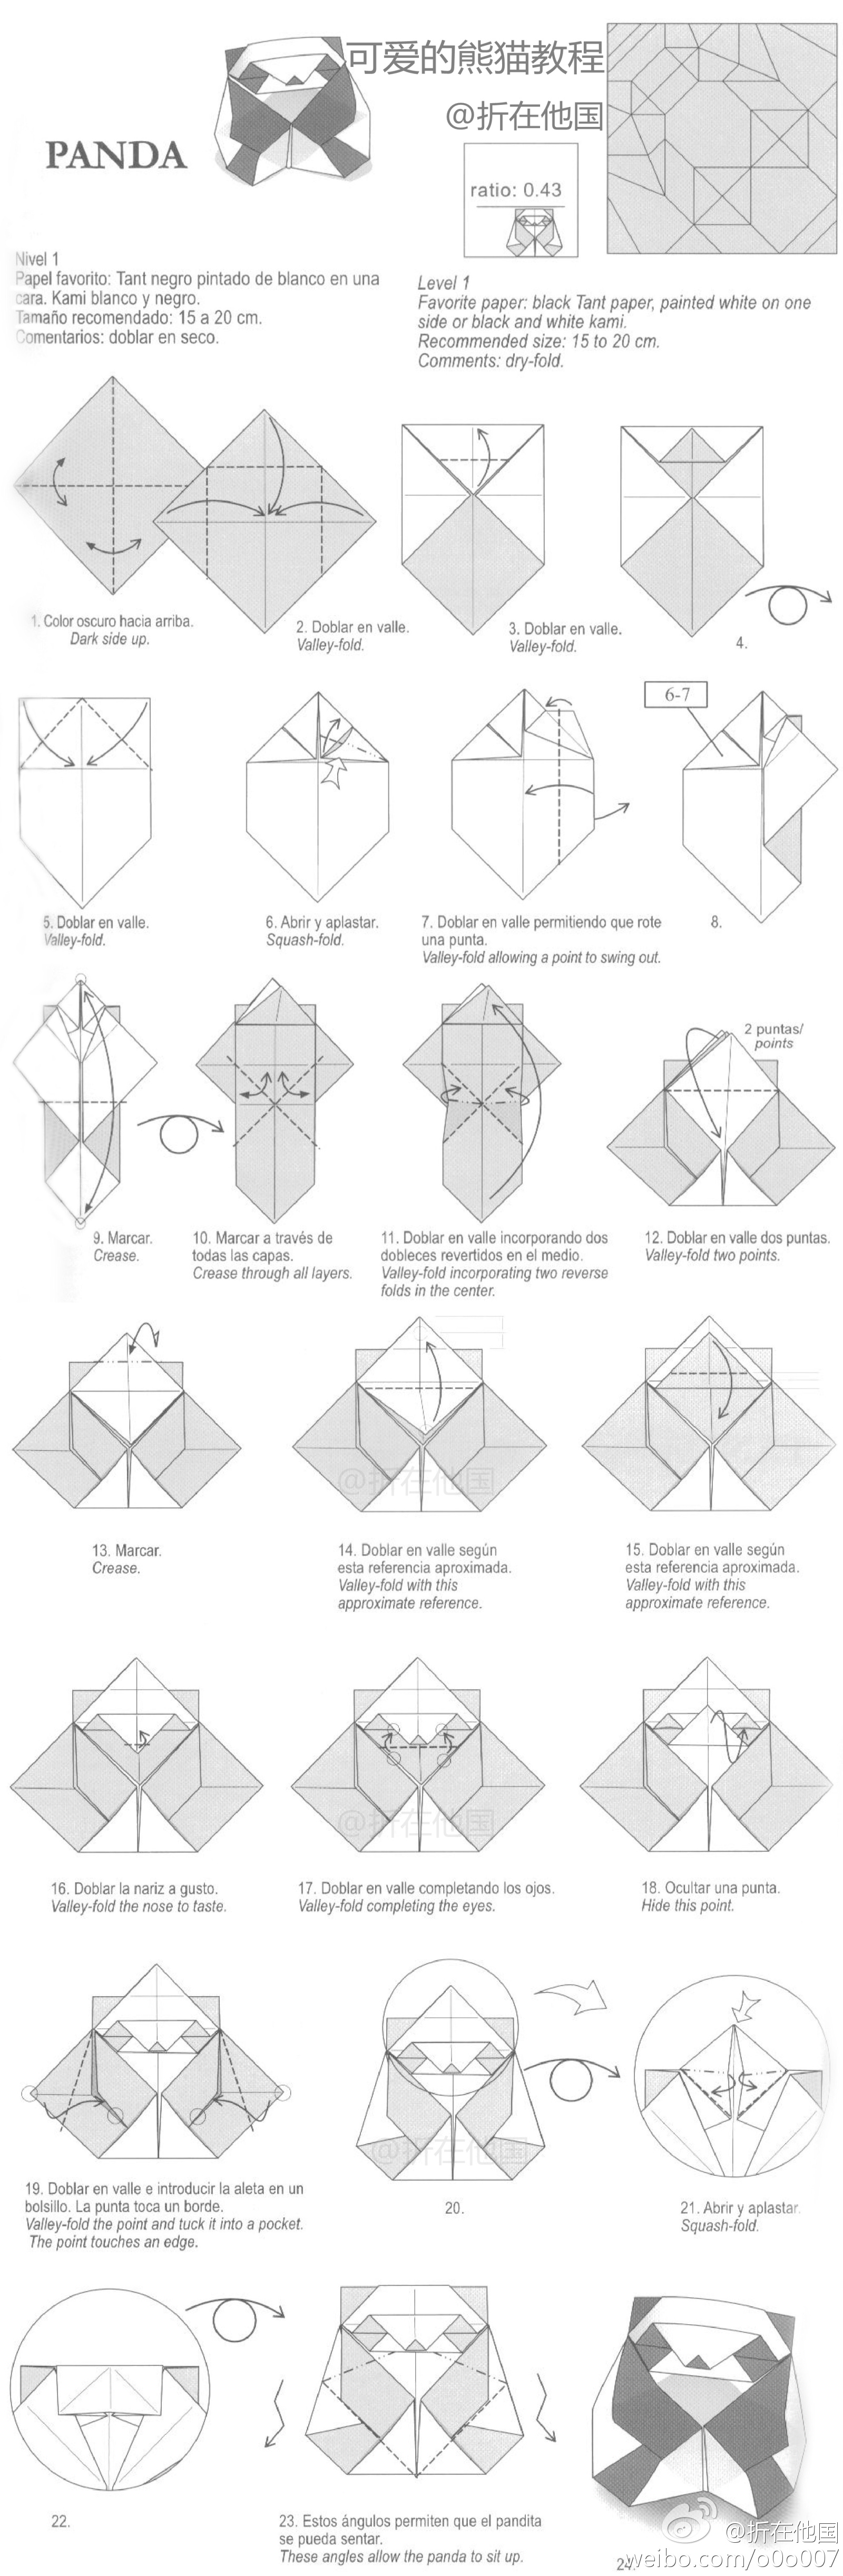 Origami Cute Panda Folding Instructions